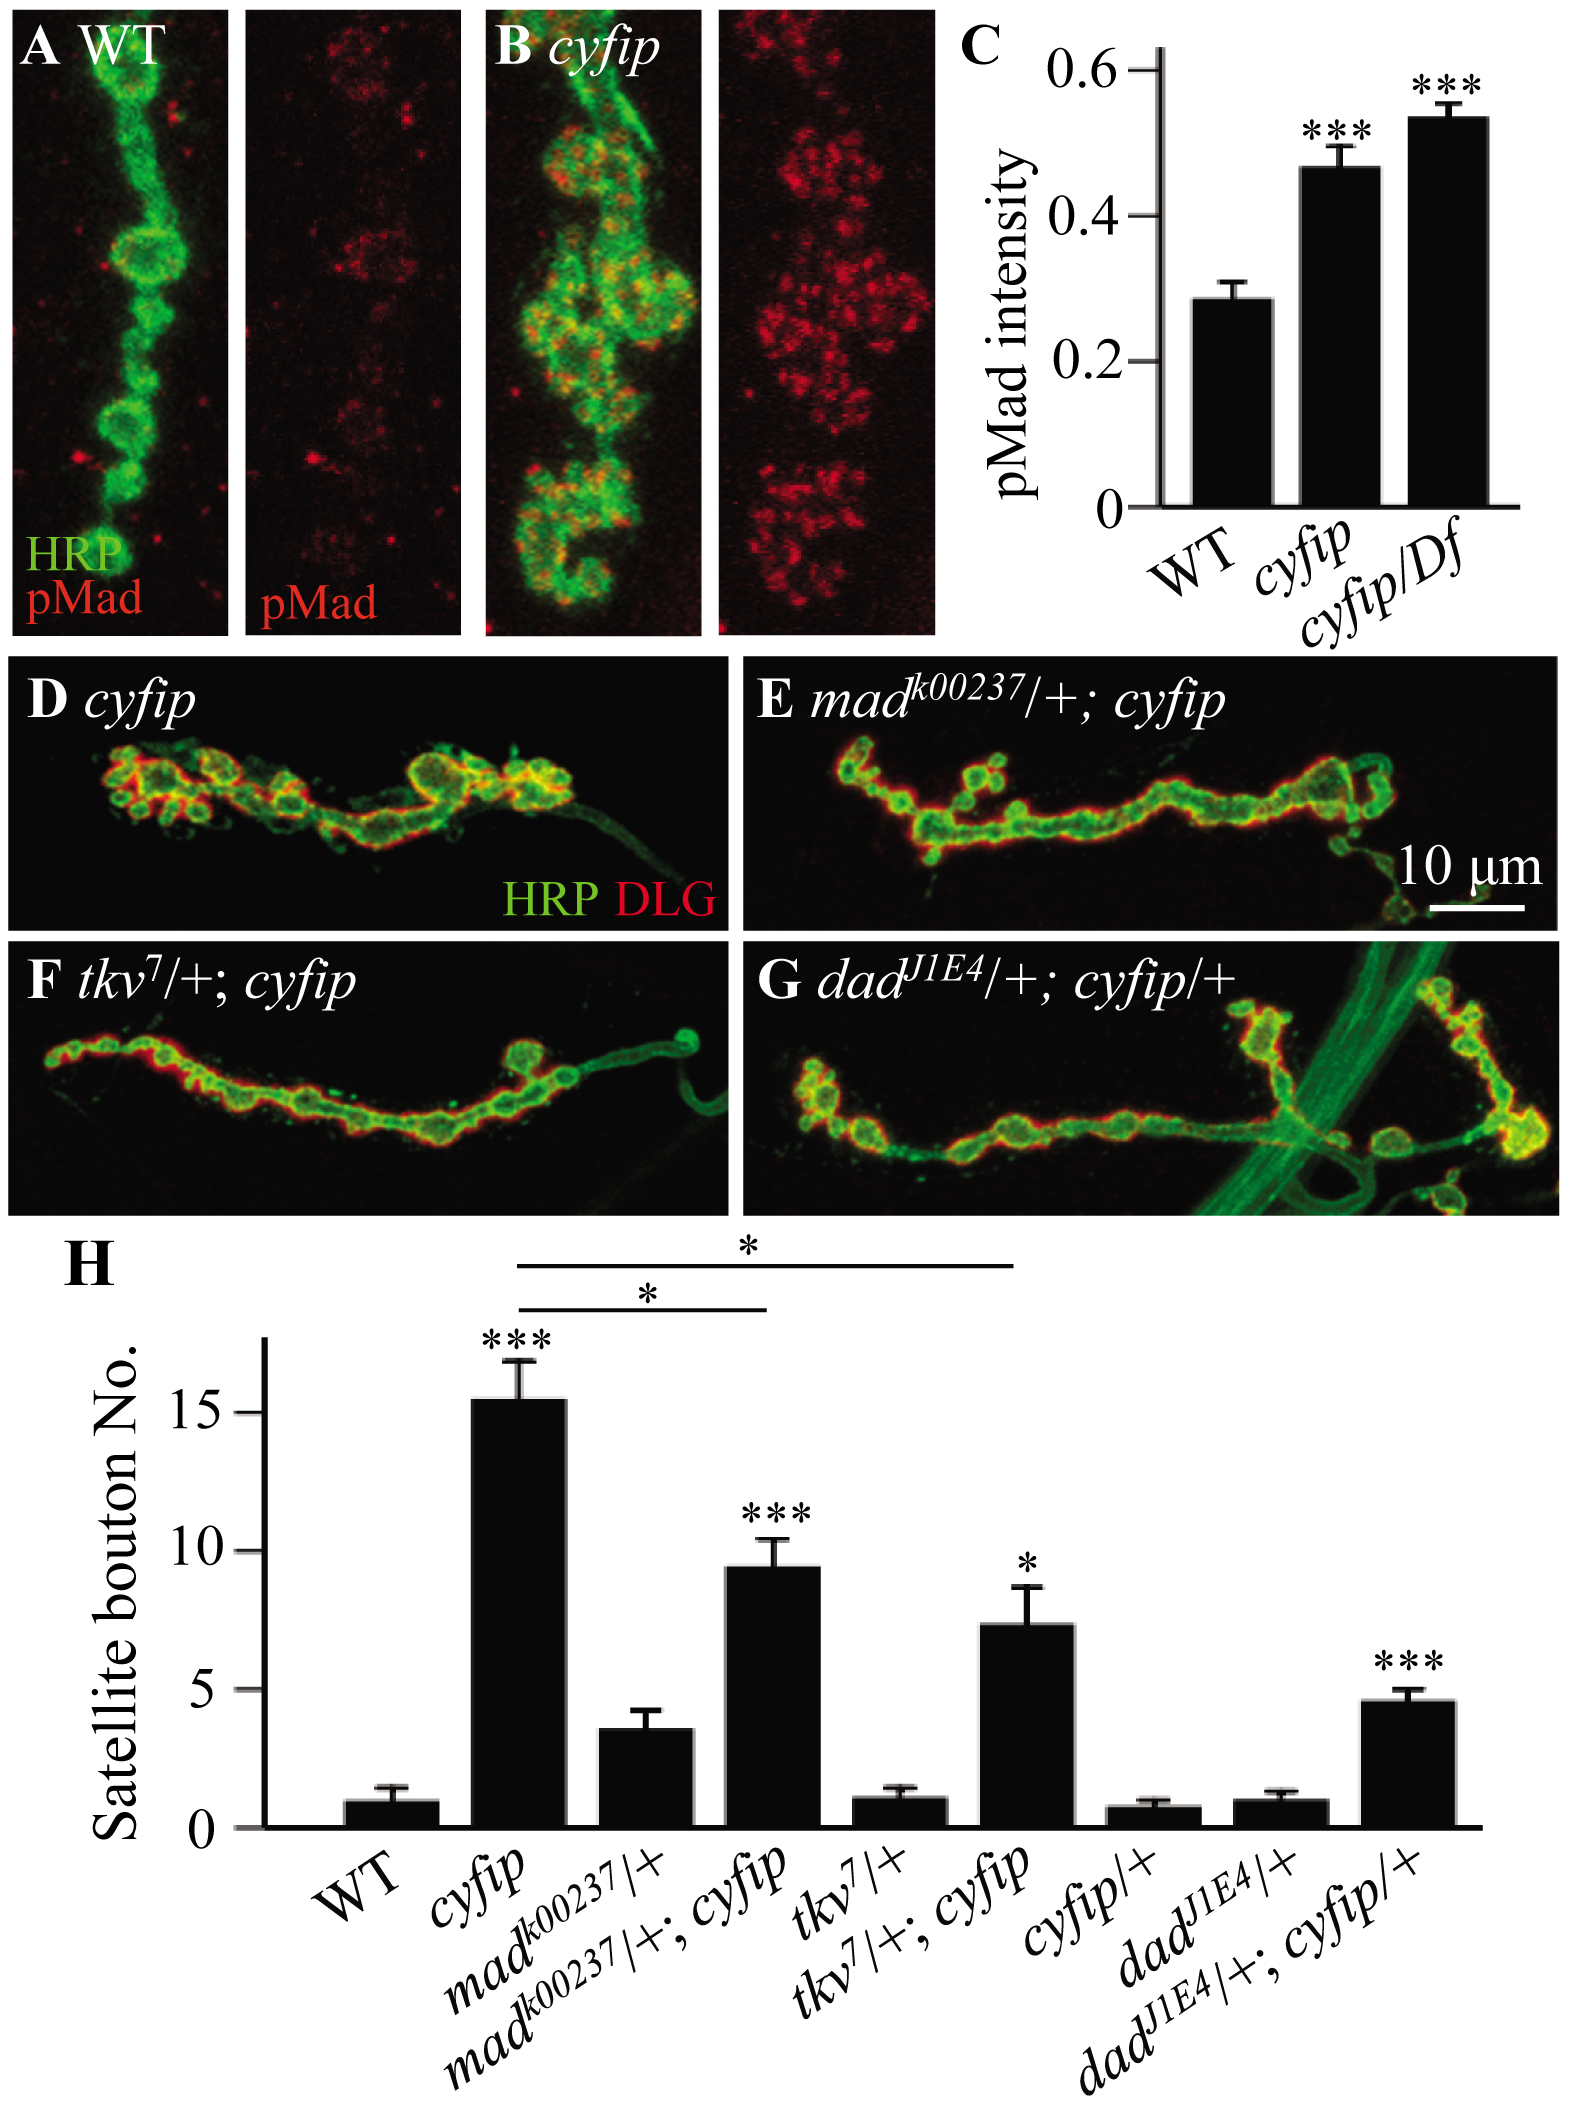 The excess satellite bouton formation in <i>cyfip</i> mutants depends on elevated BMP signaling.